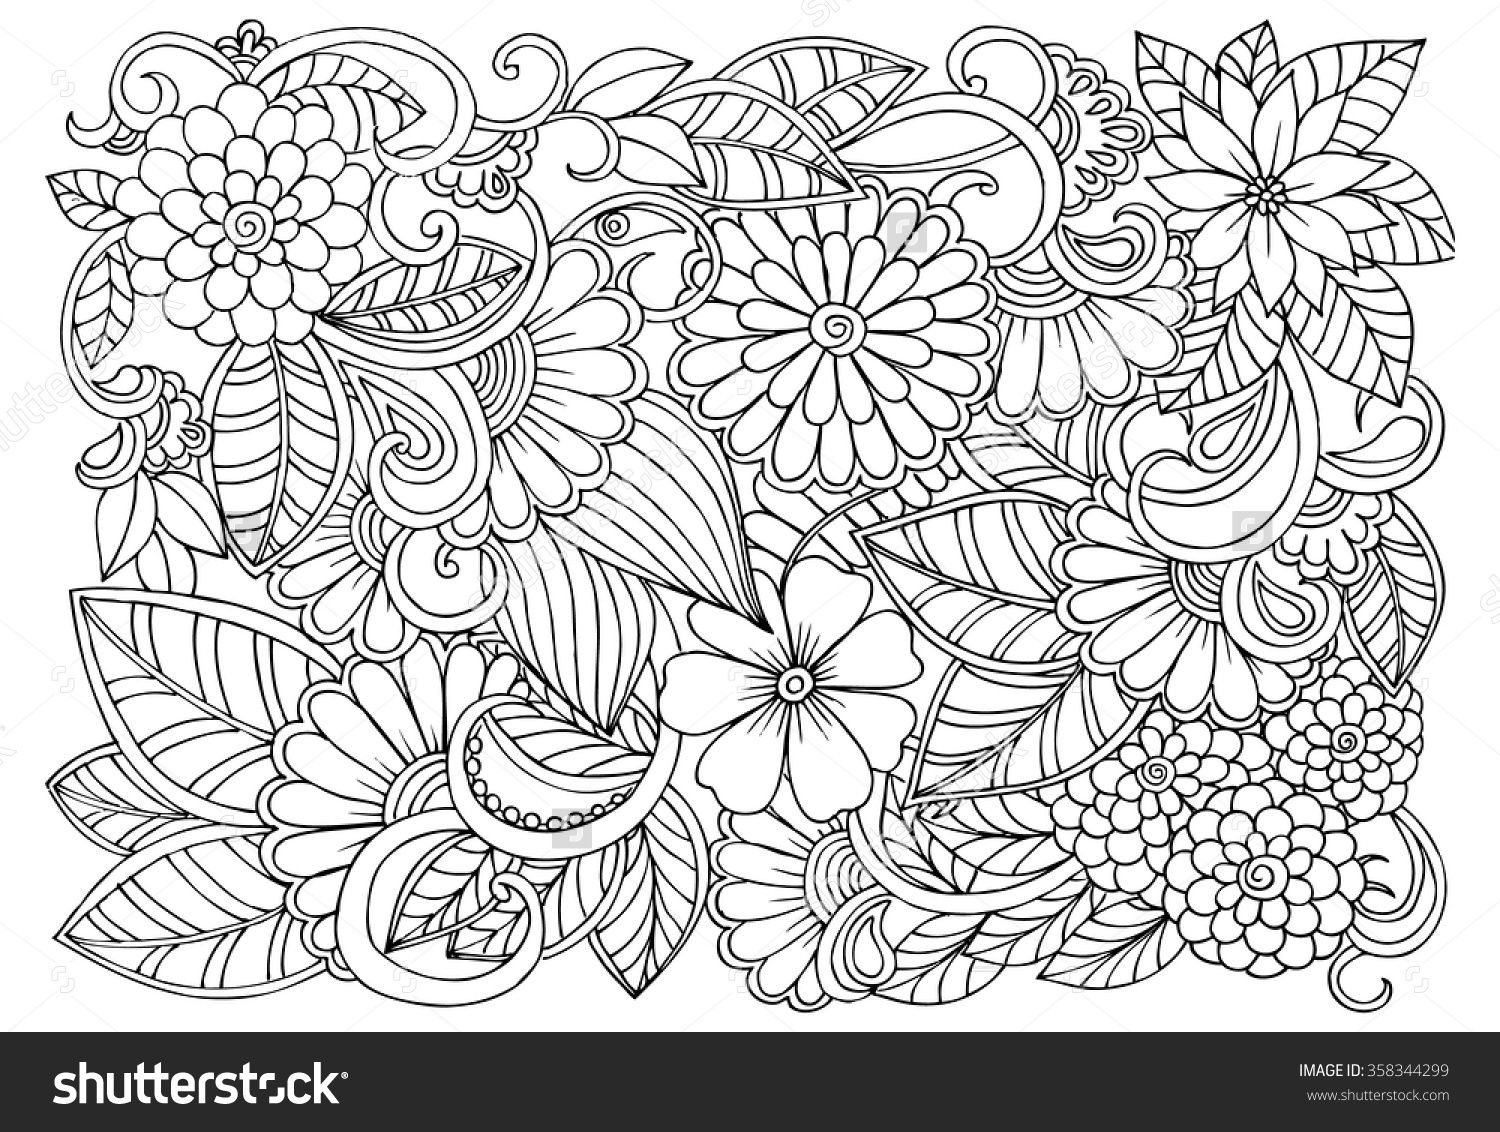 pinterest best patterns - Google Search  Pattern coloring pages